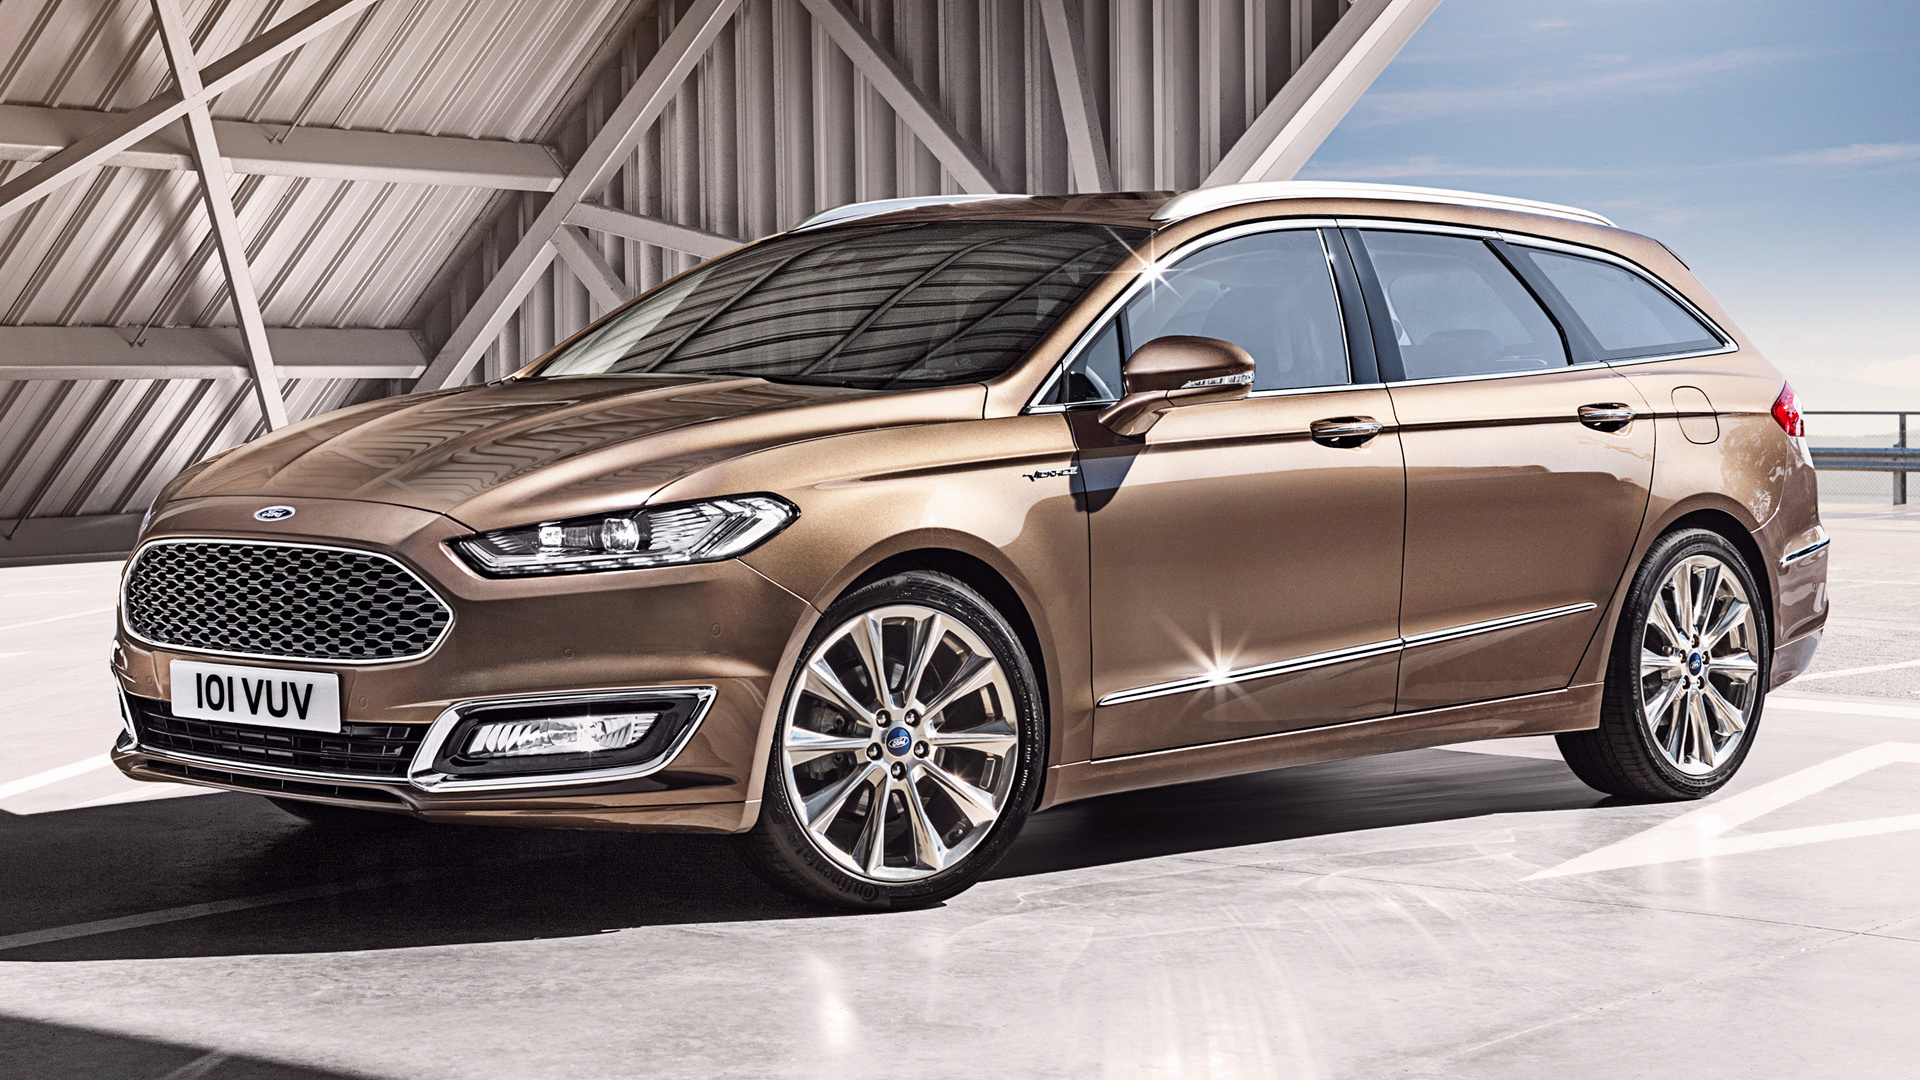 2015 ford vignale mondeo turnier wallpapers and hd images car pixel. Black Bedroom Furniture Sets. Home Design Ideas